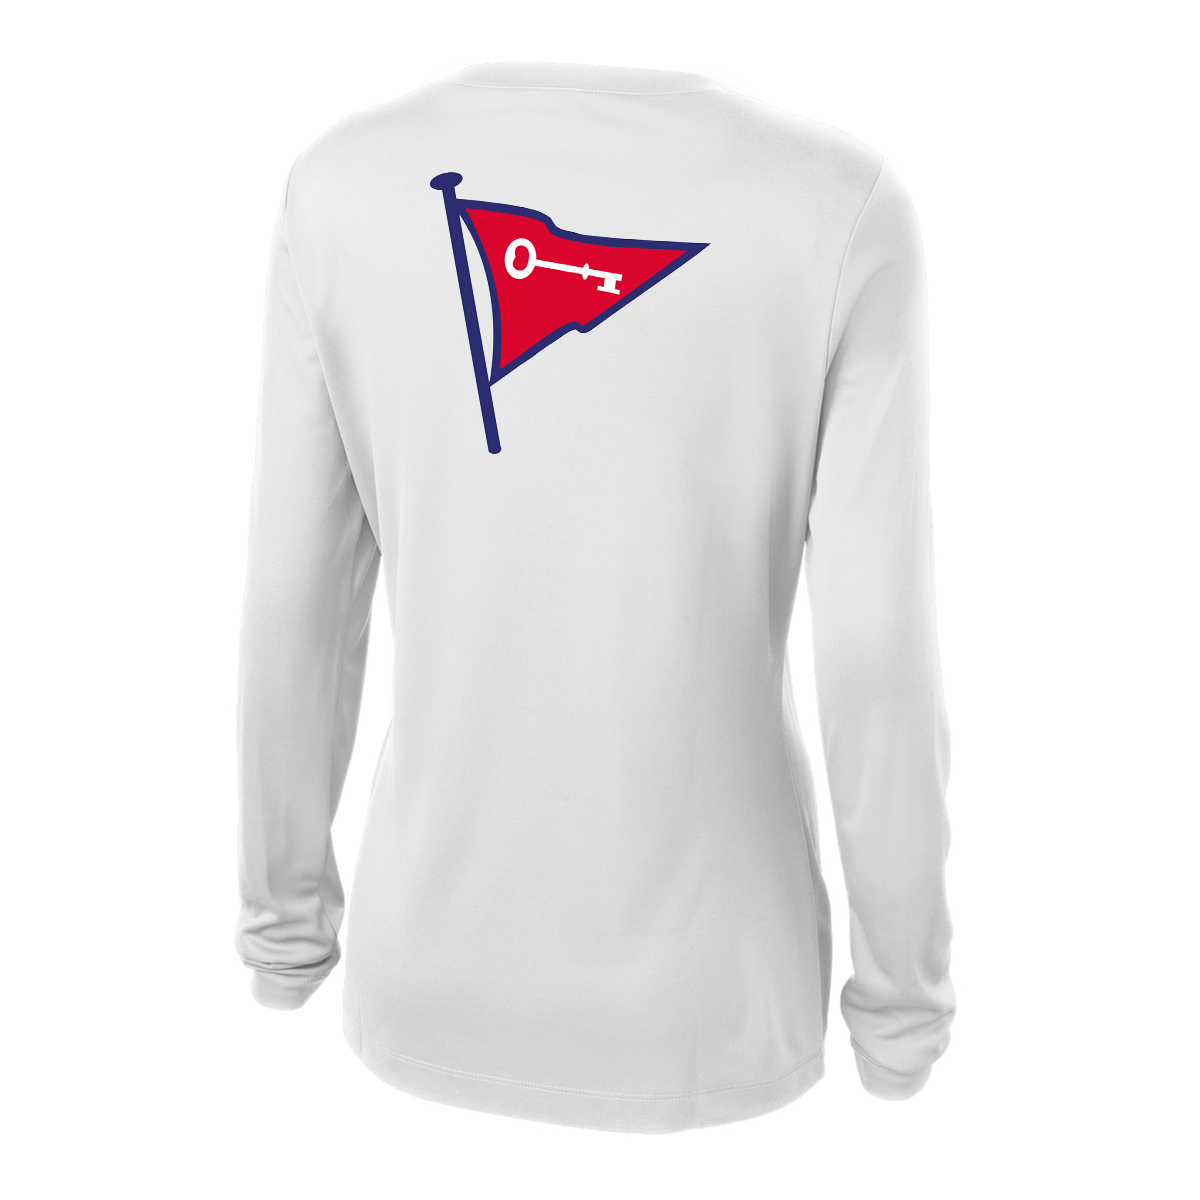 Keyport Yacht Club - Women's Long Sleeve Tech Tee